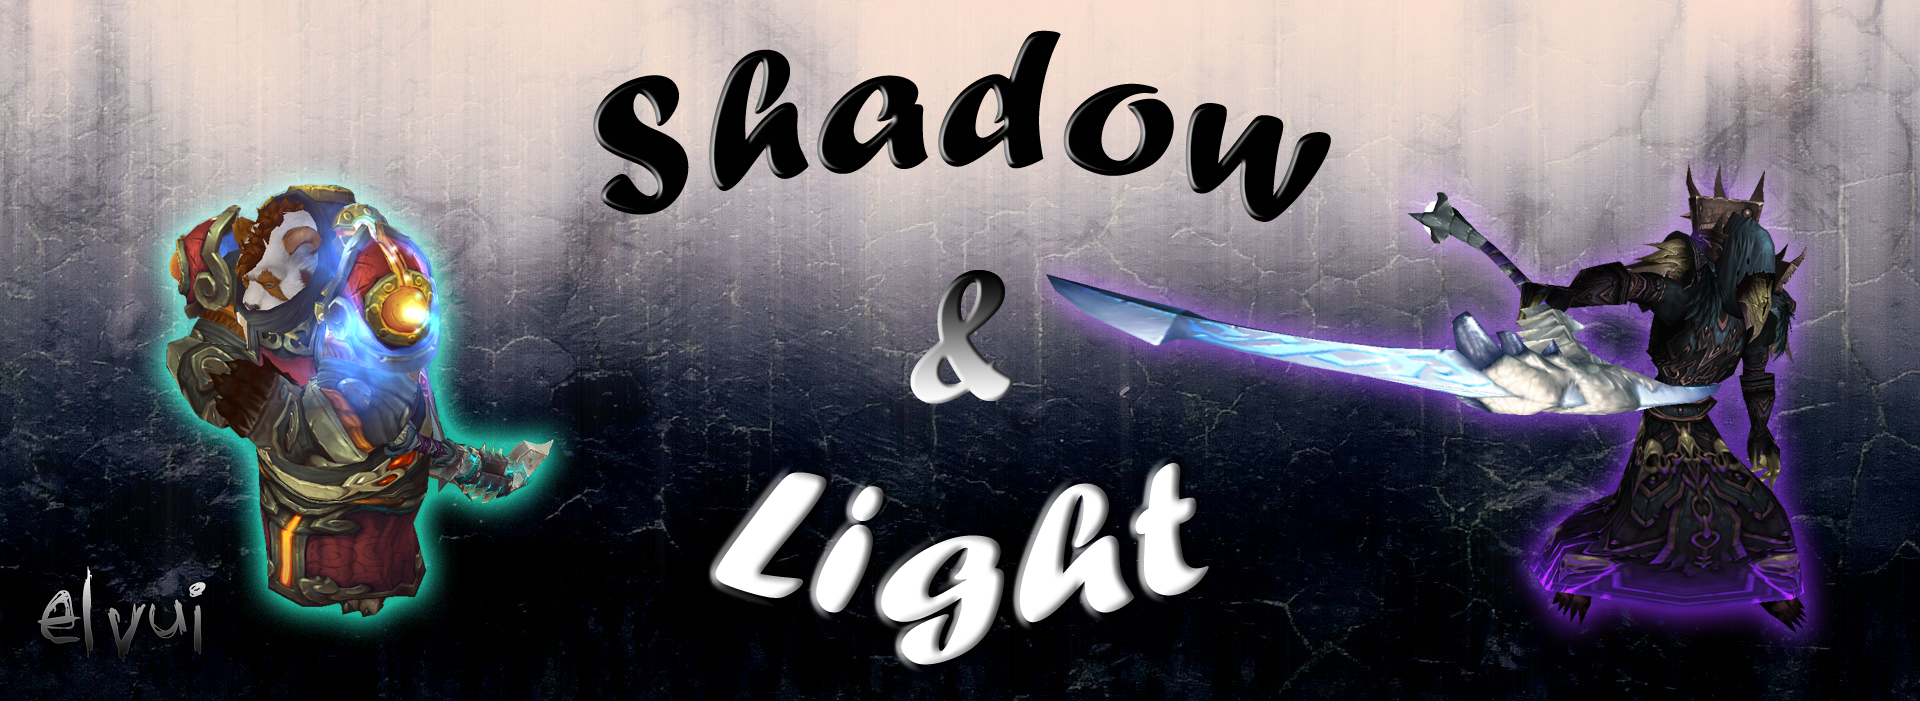 v3 37 - Files - ElvUI Shadow & Light - Addons - Projects - WoW